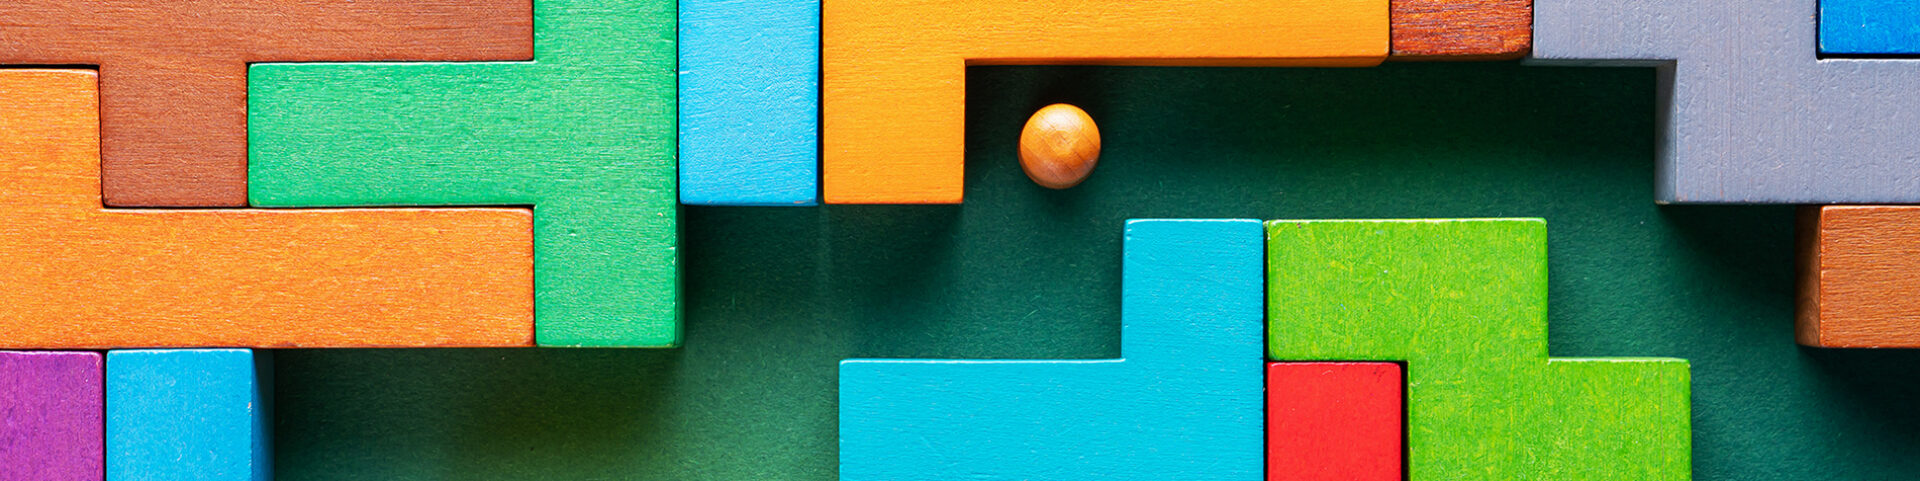 A wooden ball rolls through a labyrinth of colorful wooden blocks like critical thinking guiding decisions against cognitive bias